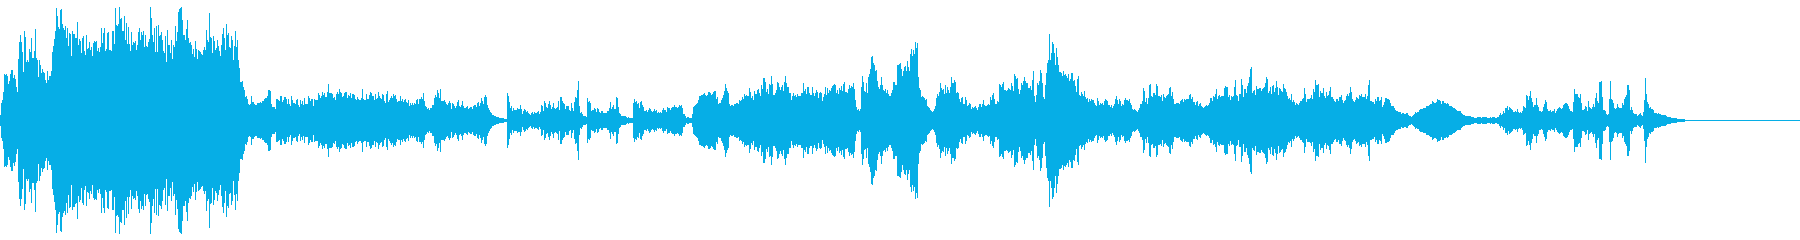 Classic songs often used in sad situations's reproduced waveform